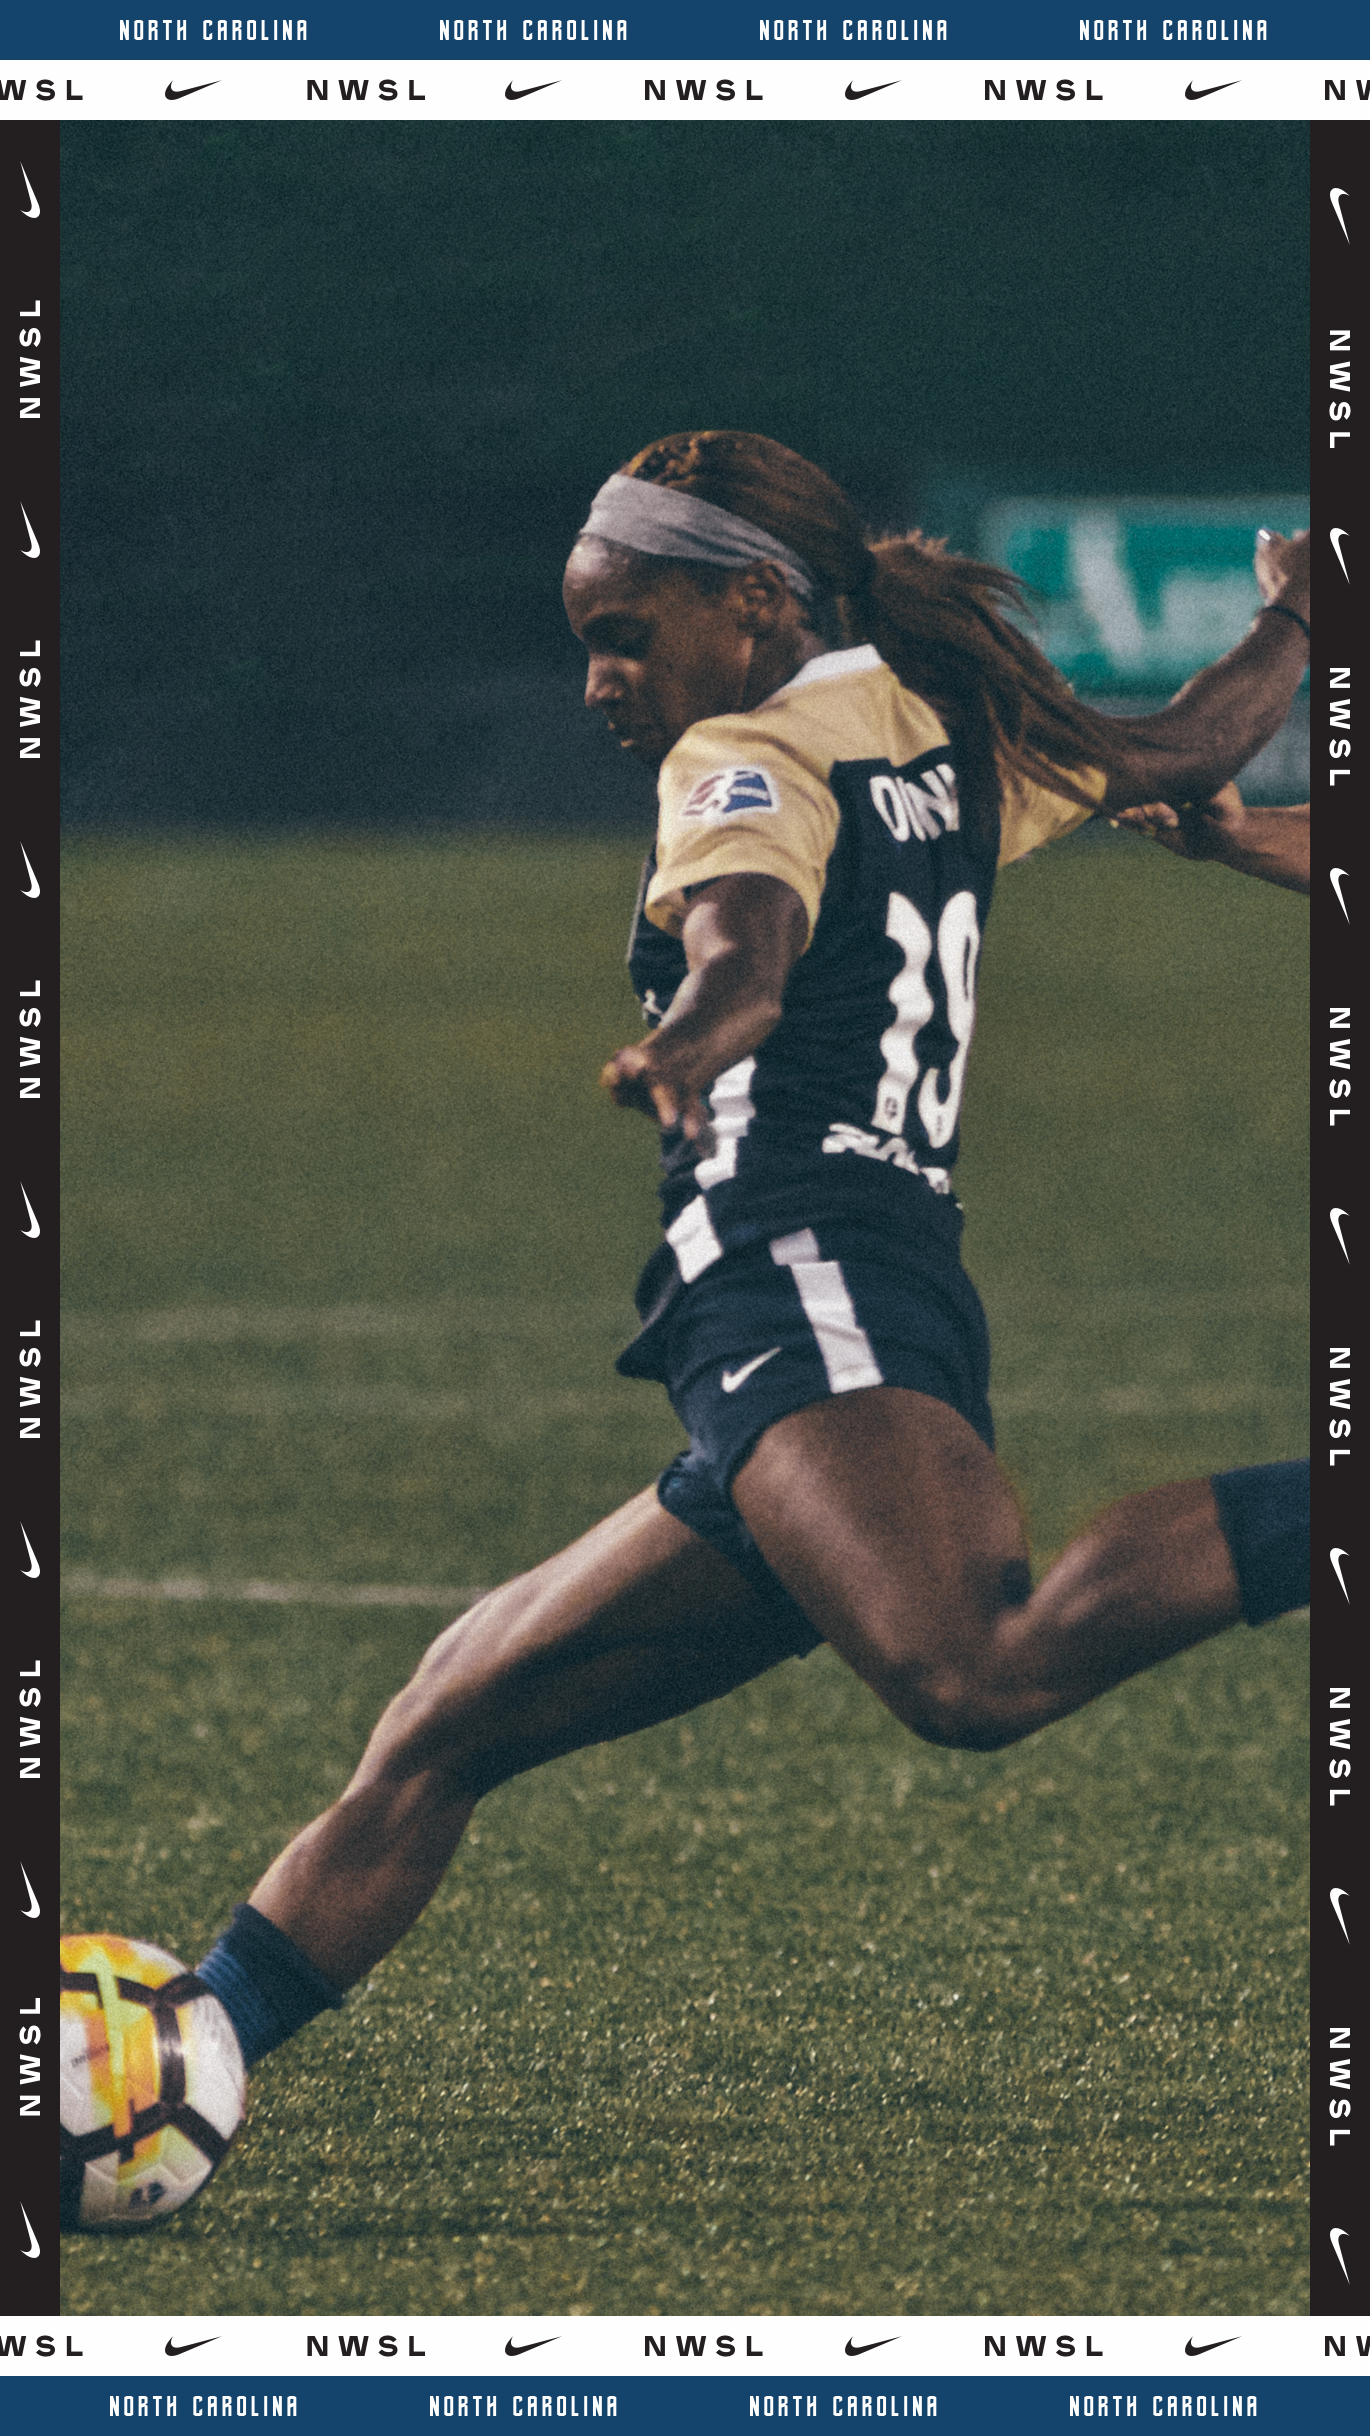 NIKE-NWSL-IG-STORY-10.png